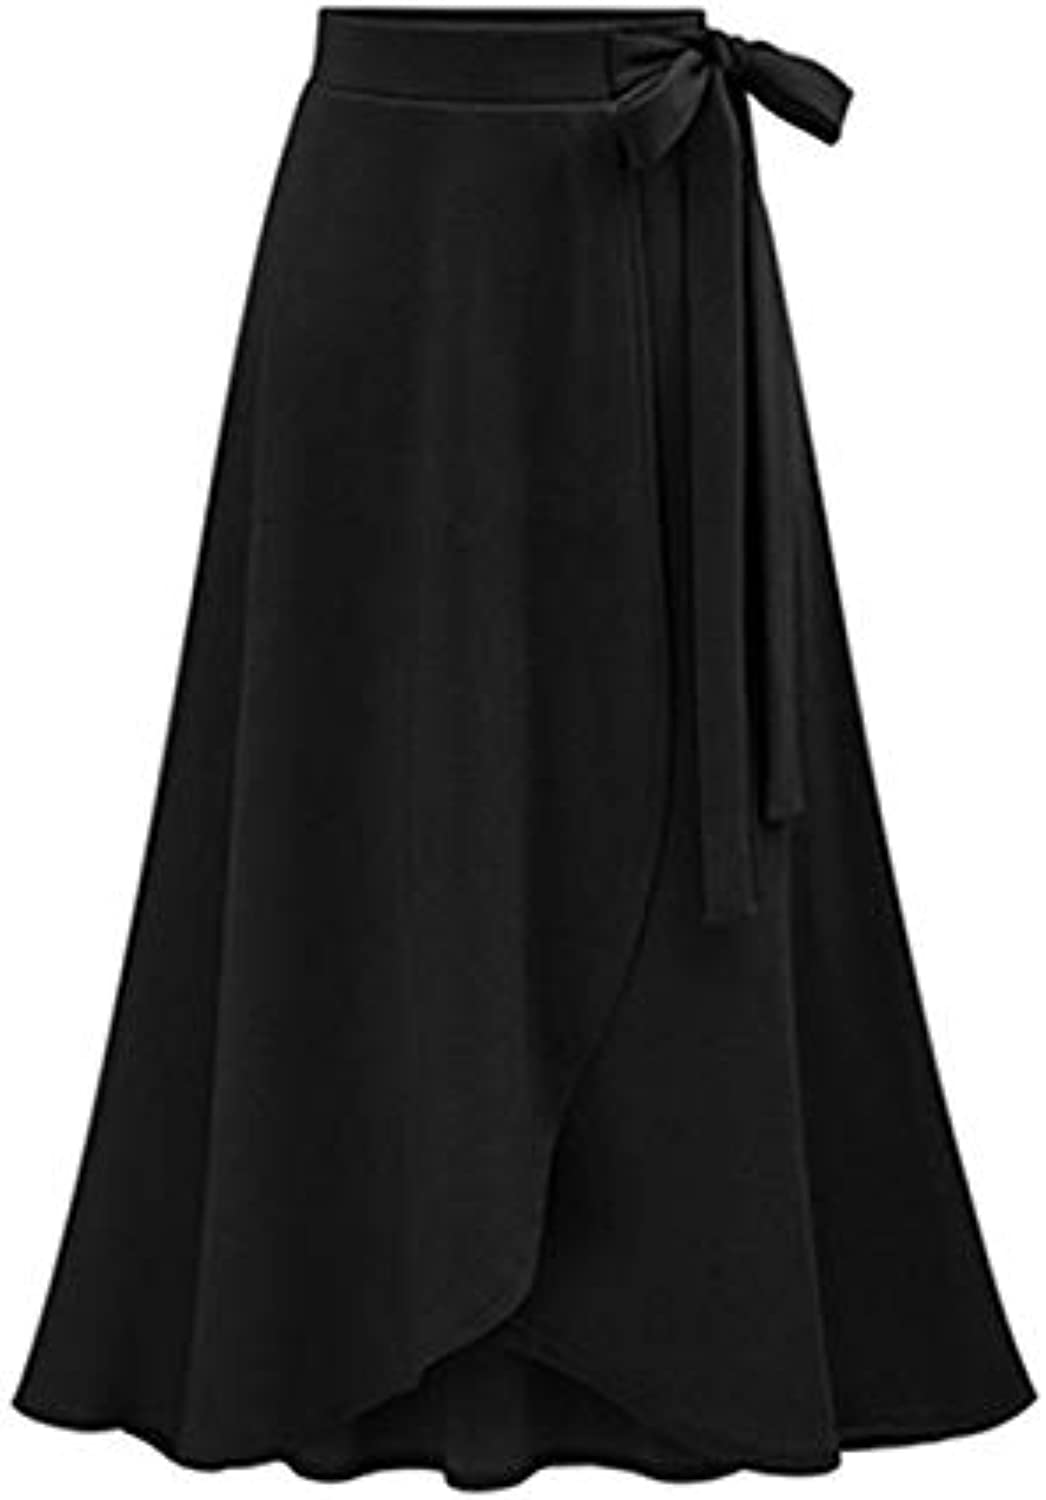 YKDDCC High-end short skirt Plus Size 6xl Women Skirts Oversize Bow Ruffles Vintage High Waist Gown Pleated Cotton Mid Ladies Skirts Beautiful And Comfortable Skirts Make You Look More Beautiful